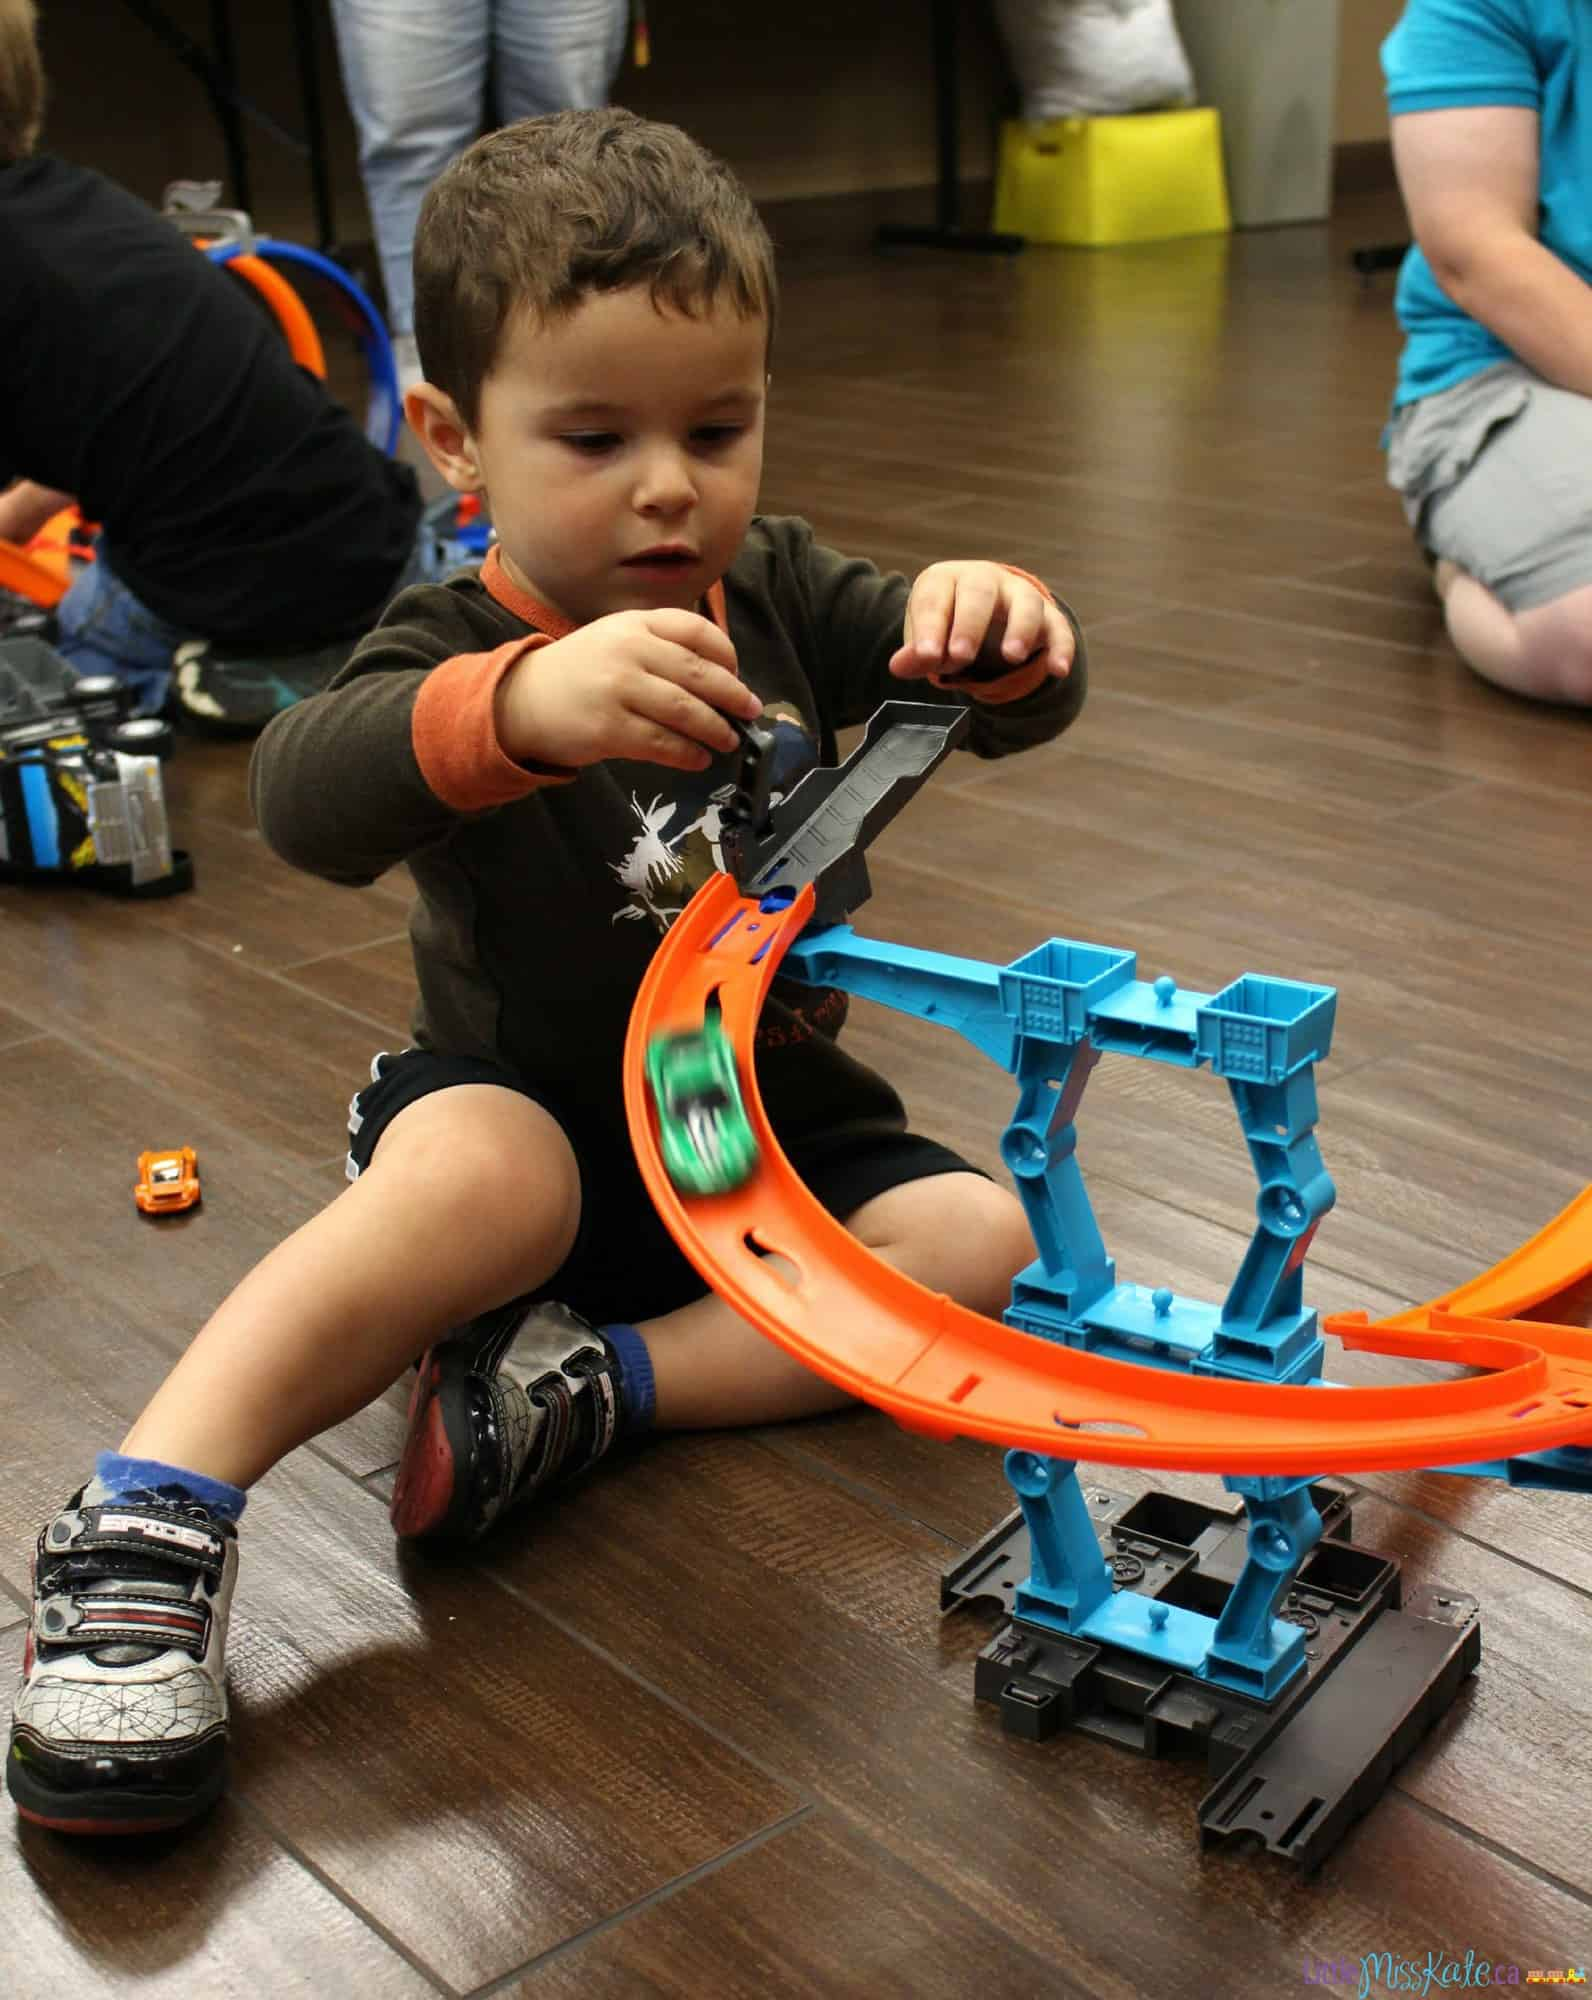 educational-games-with-hot-wheels-toy-cars-for-kids-06